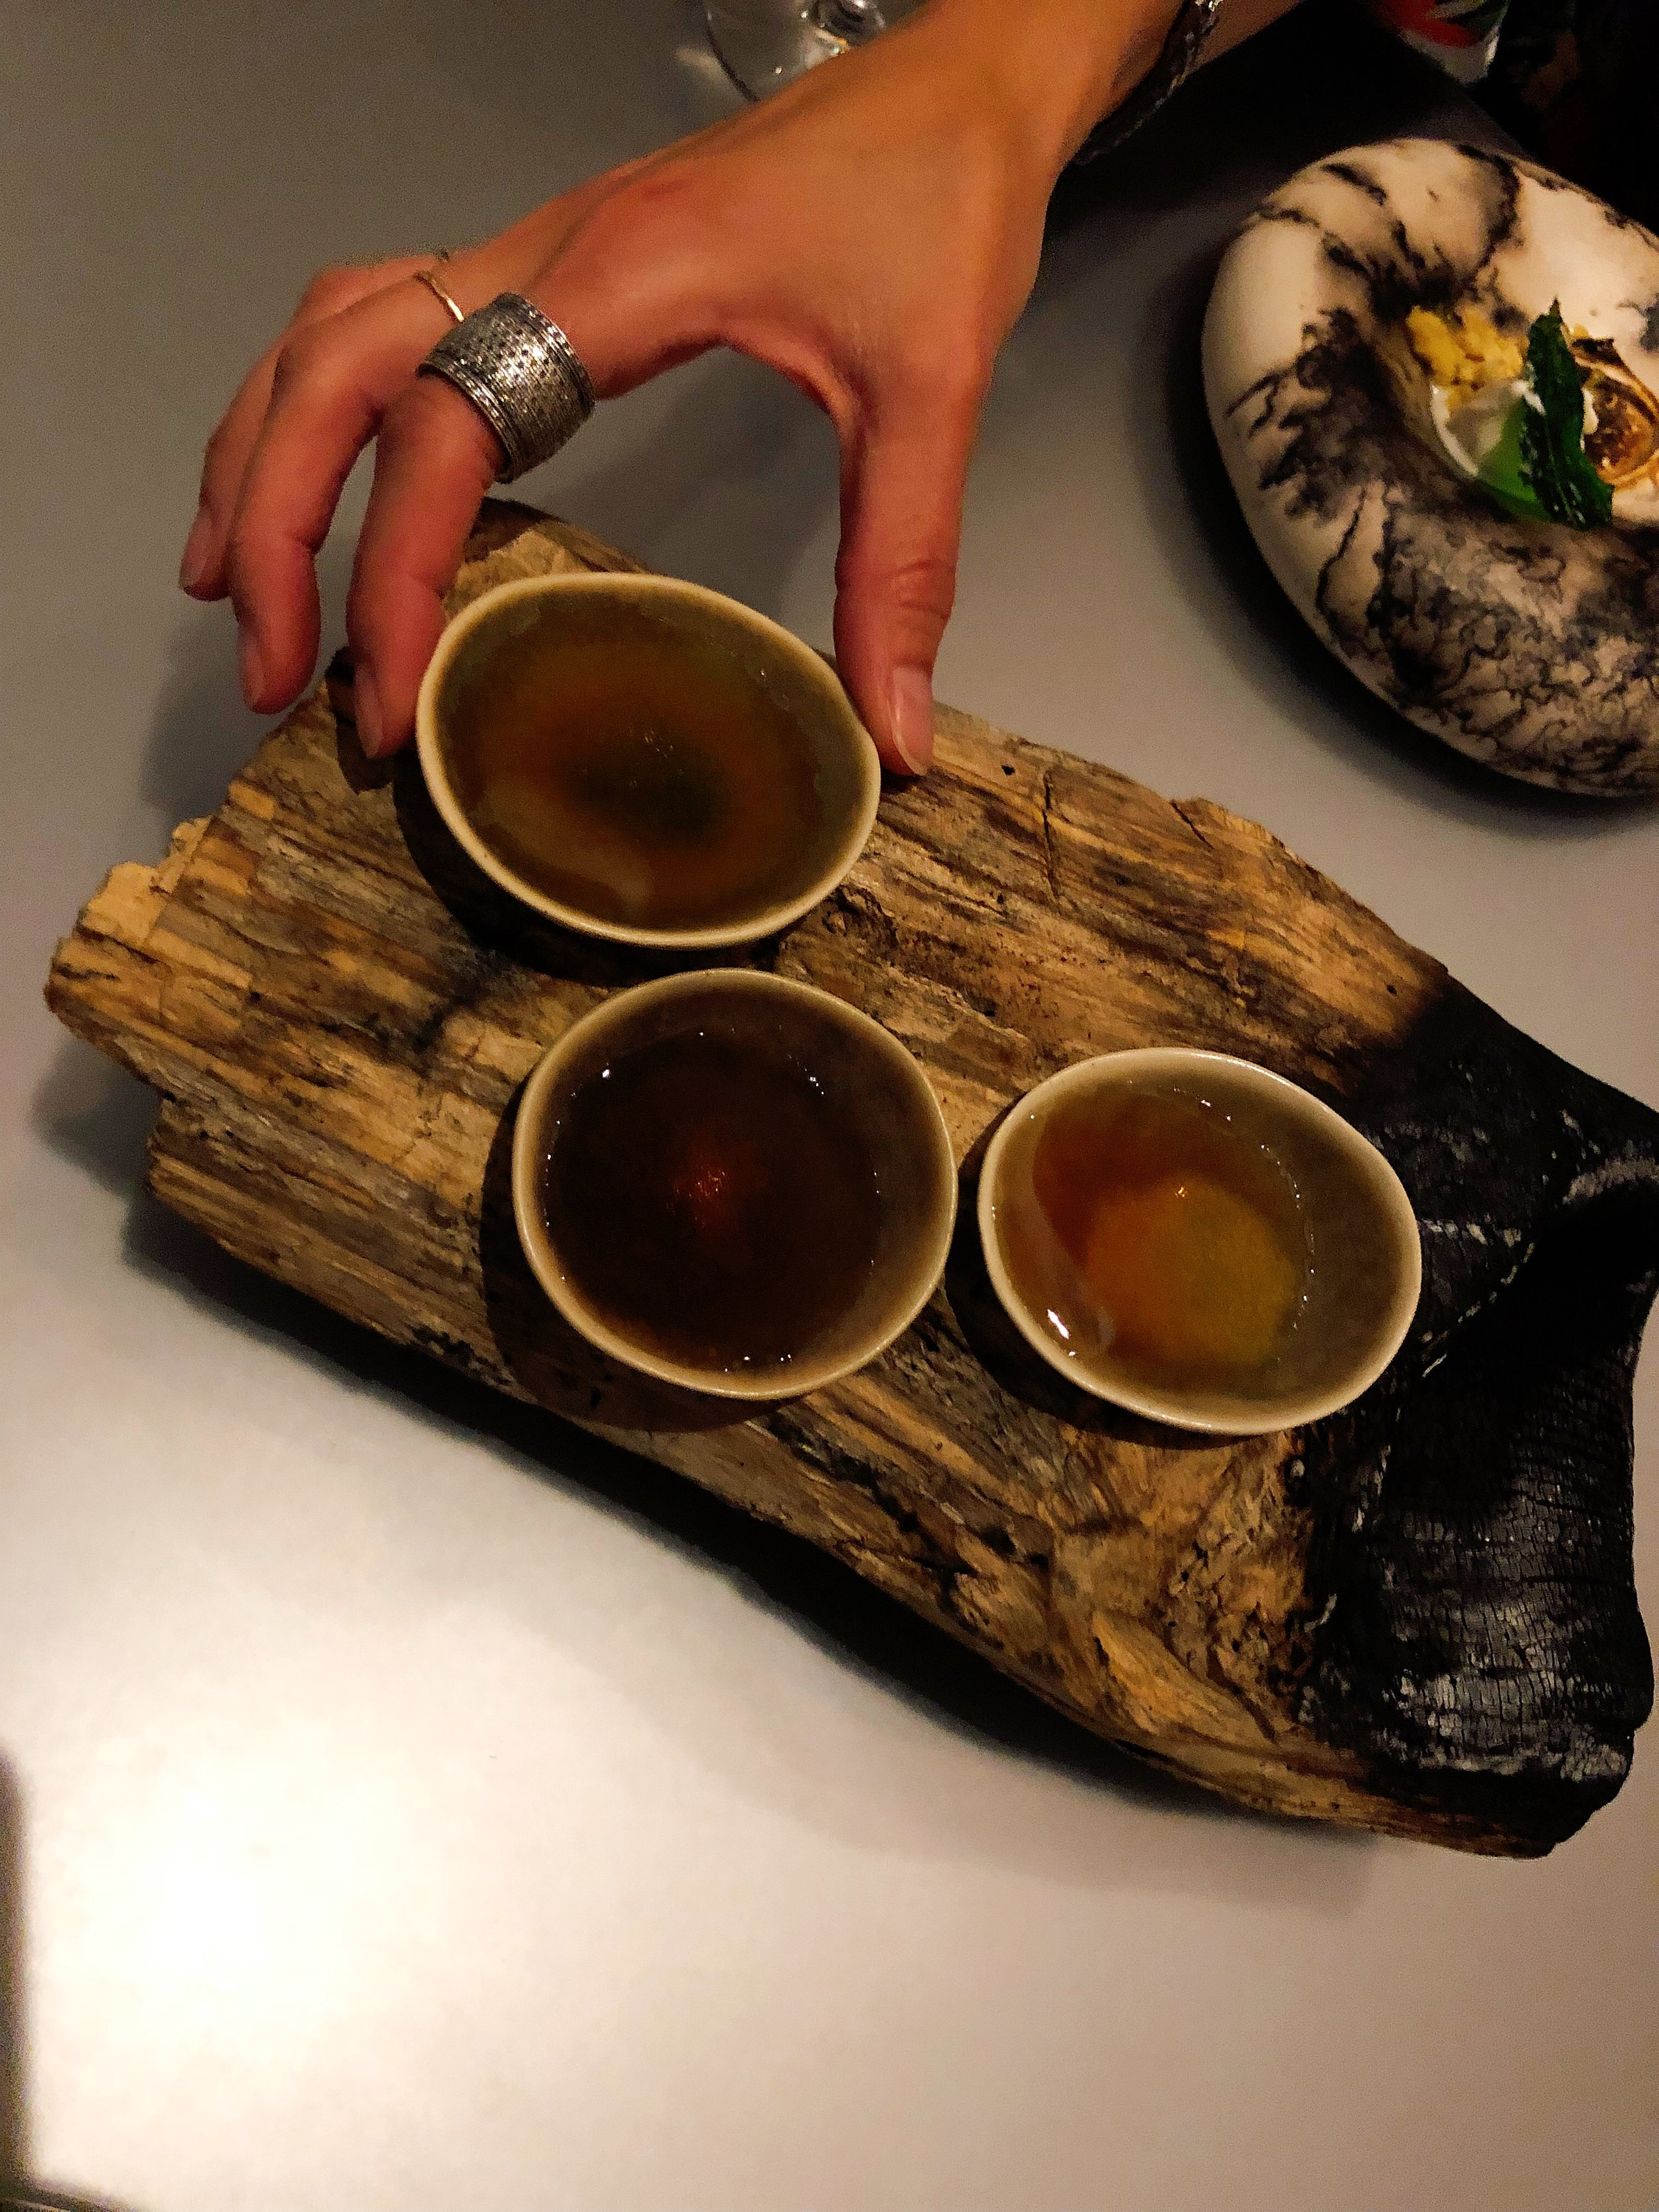 Our Wood Course Was Paired With Cruz De Fuego Mezcal From Oaxaca